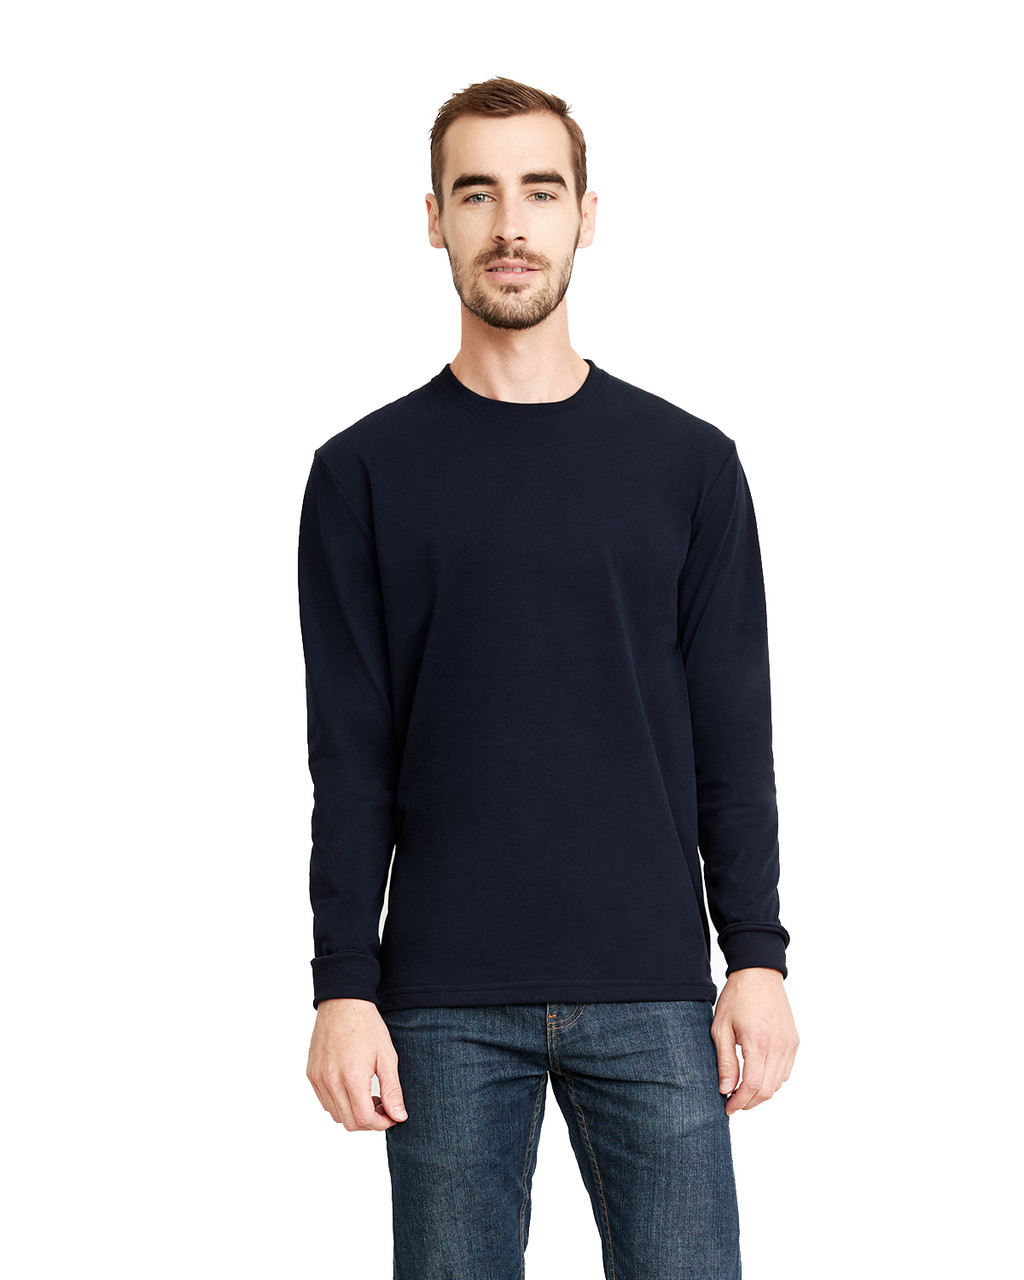 Midnight Navy - 6411 Next Level Unisex Sueded Long-Sleeve Crew Shirt | Blankclothing.ca